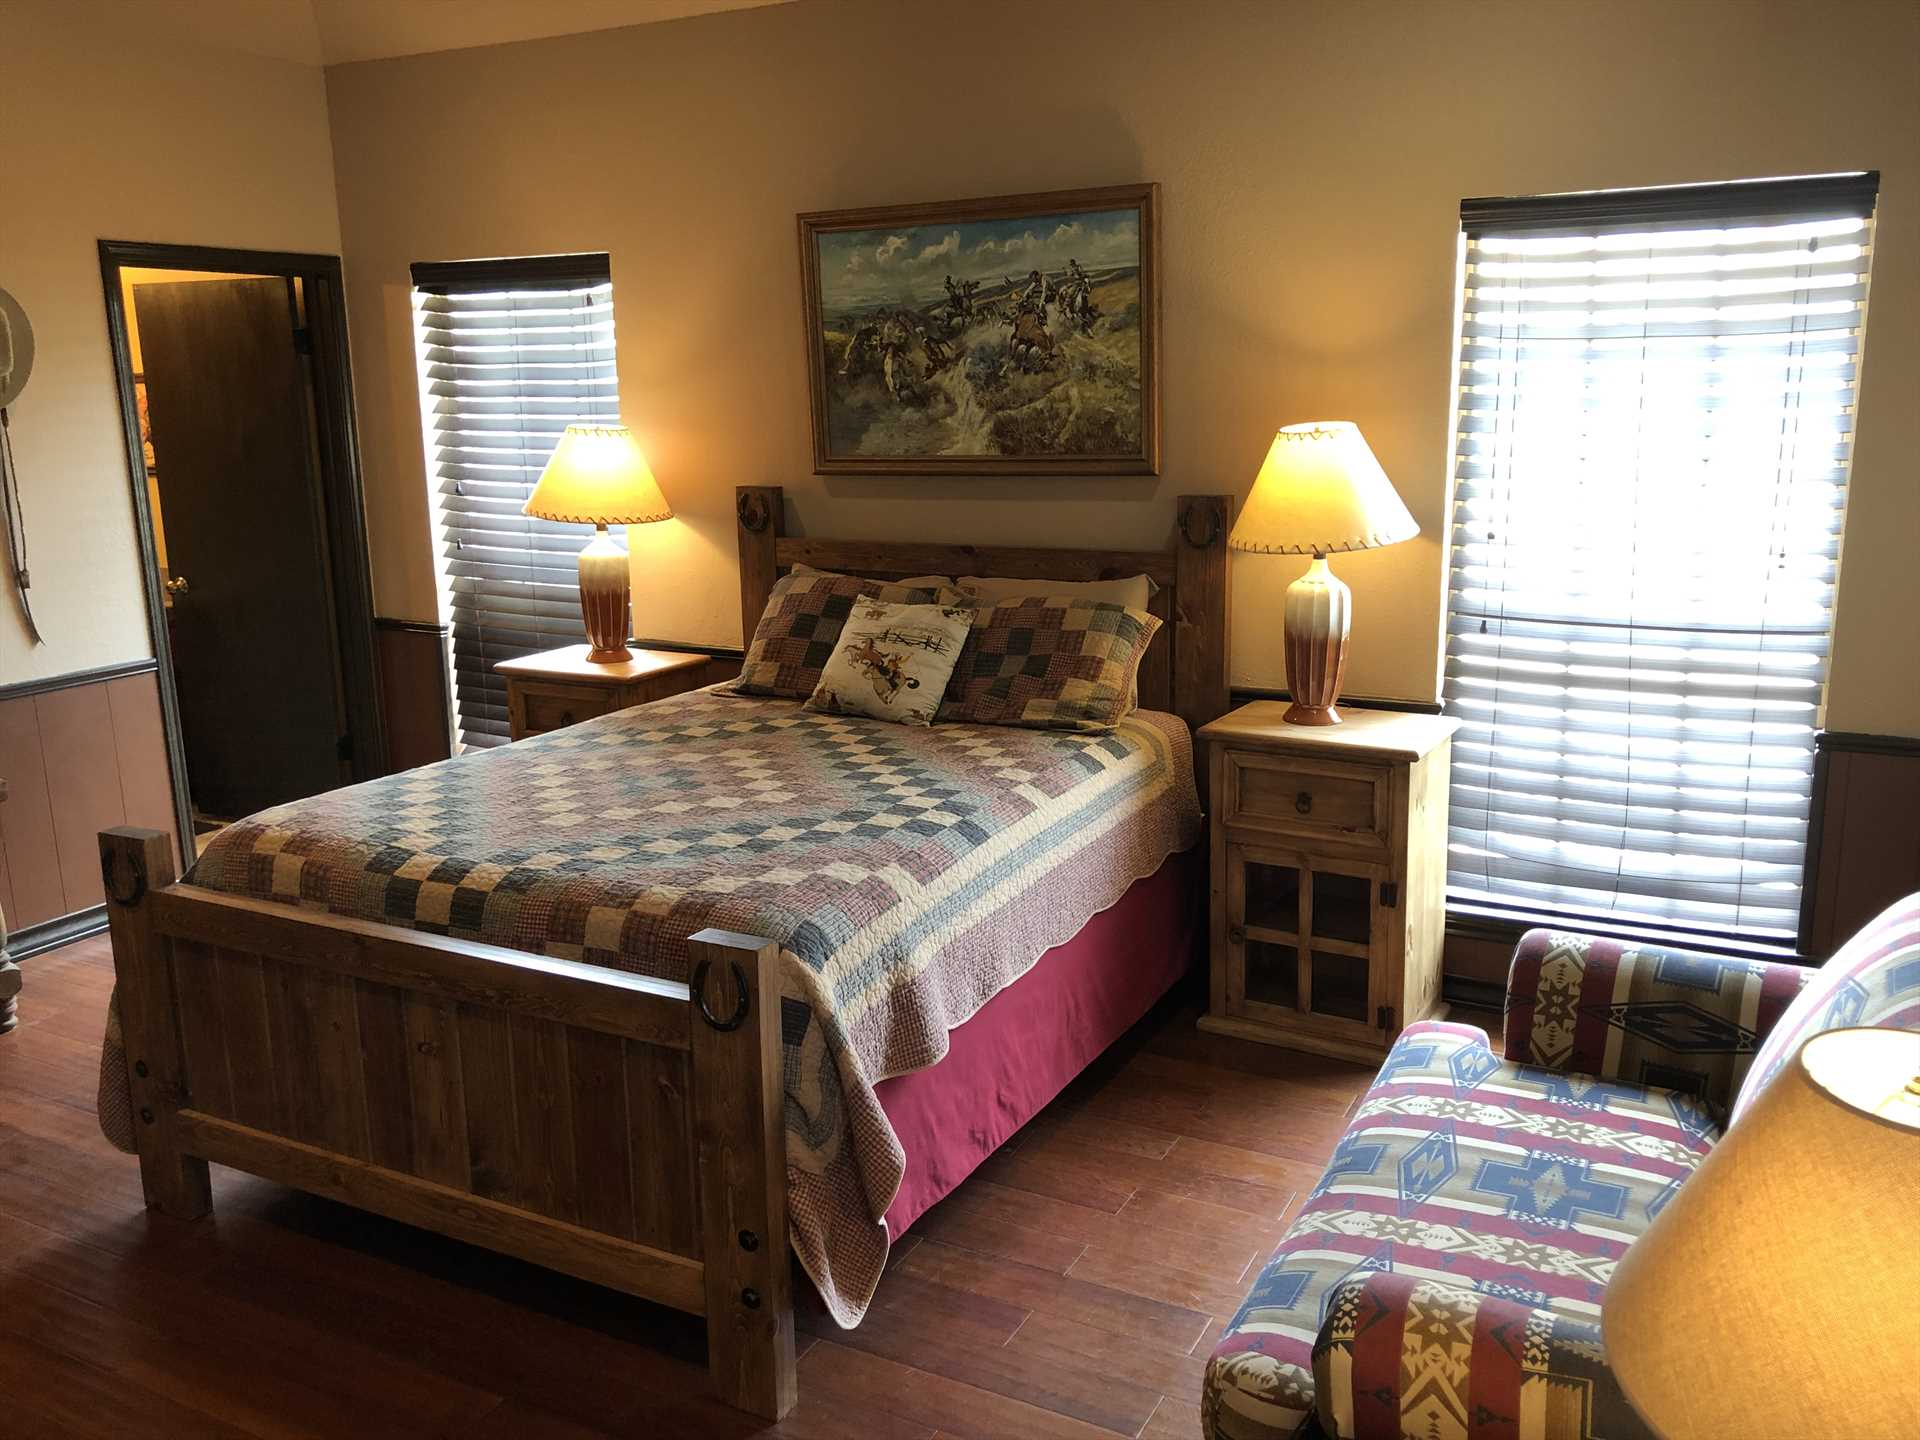 Nighttime comfort on queen and twin beds, with comfy and clean bed and bath linens provided.